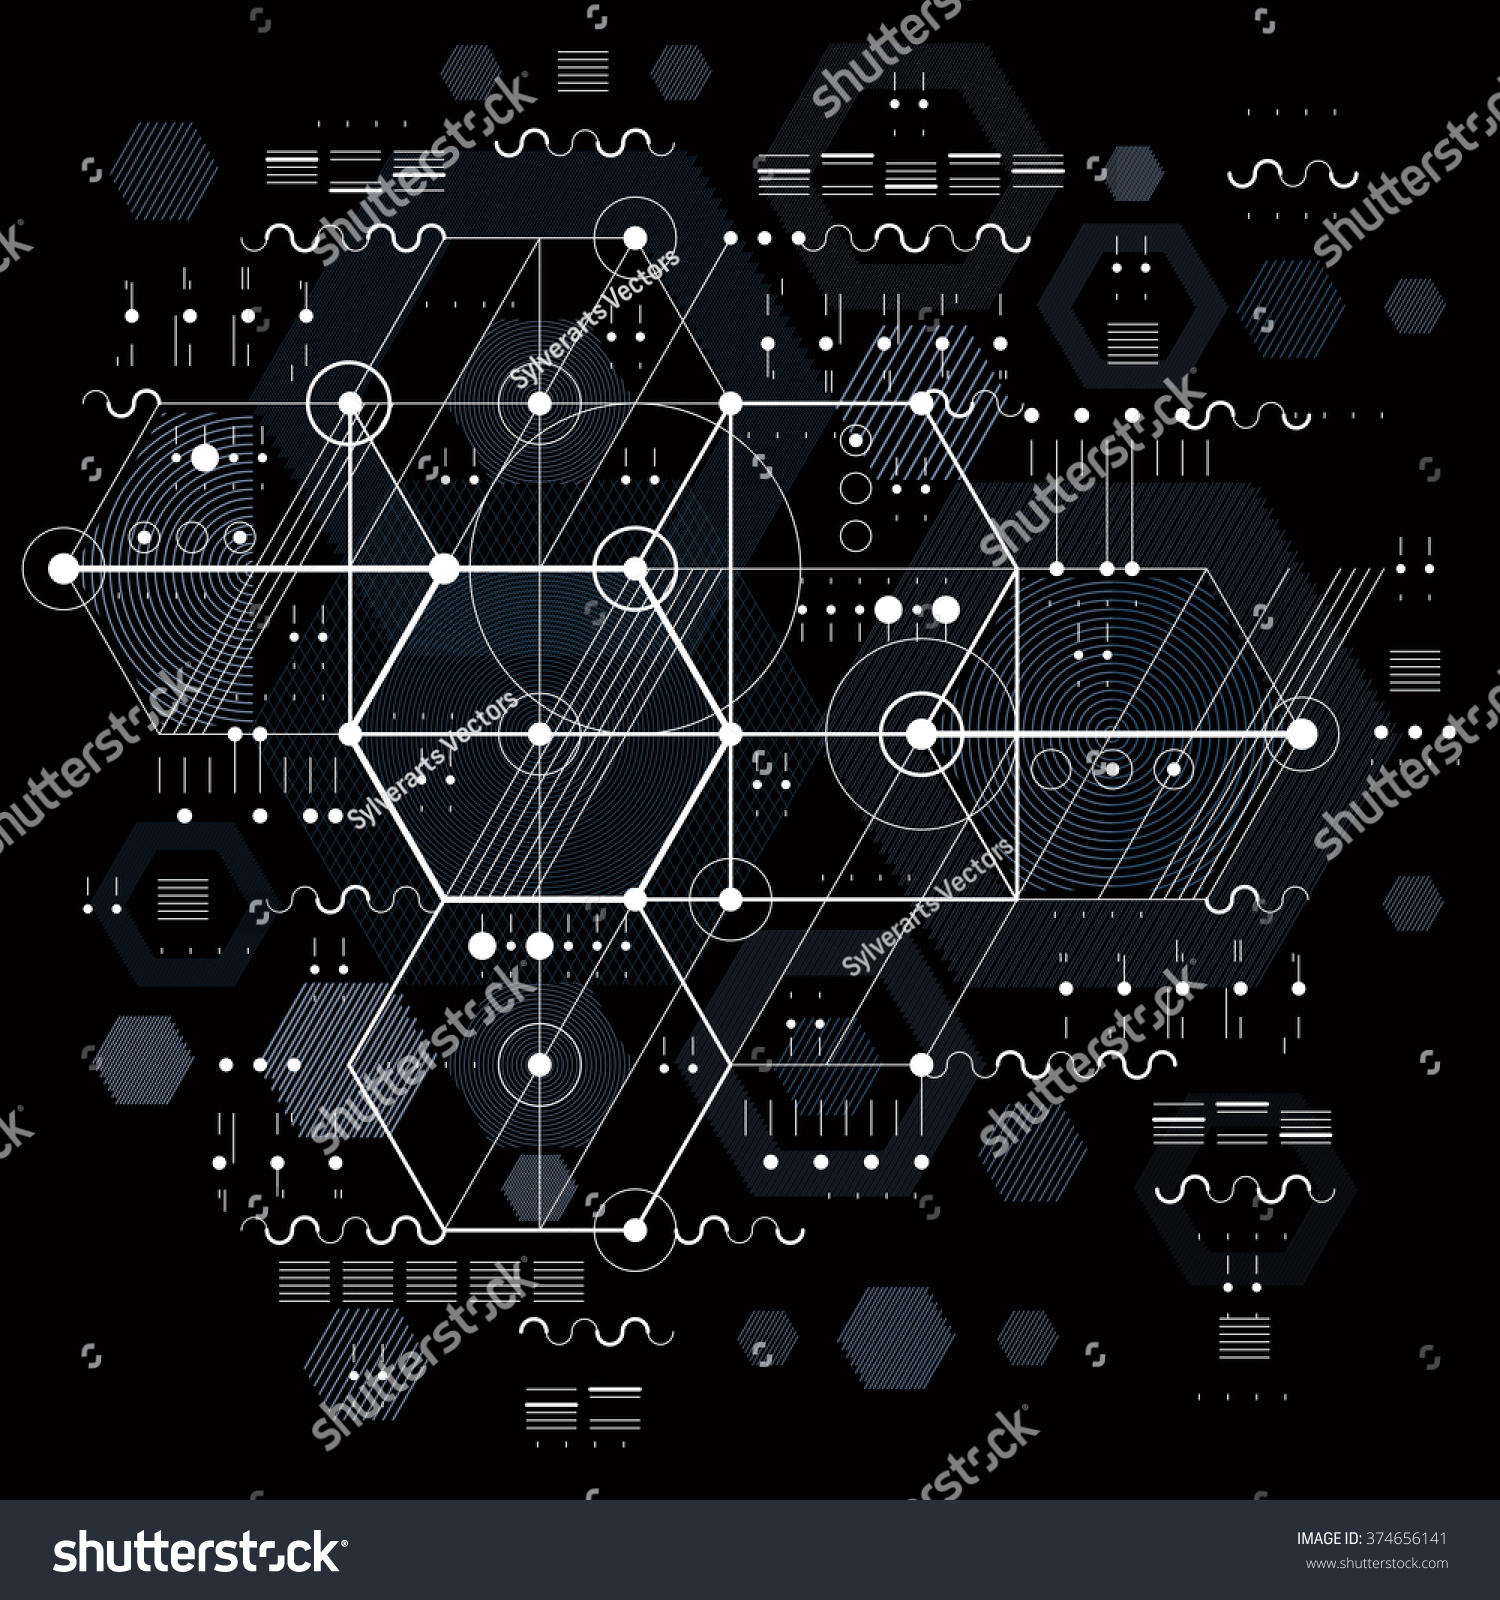 Abstract geometry pattern line and shape vector illustration design - Vector Industrial Engineering Background Future Technical